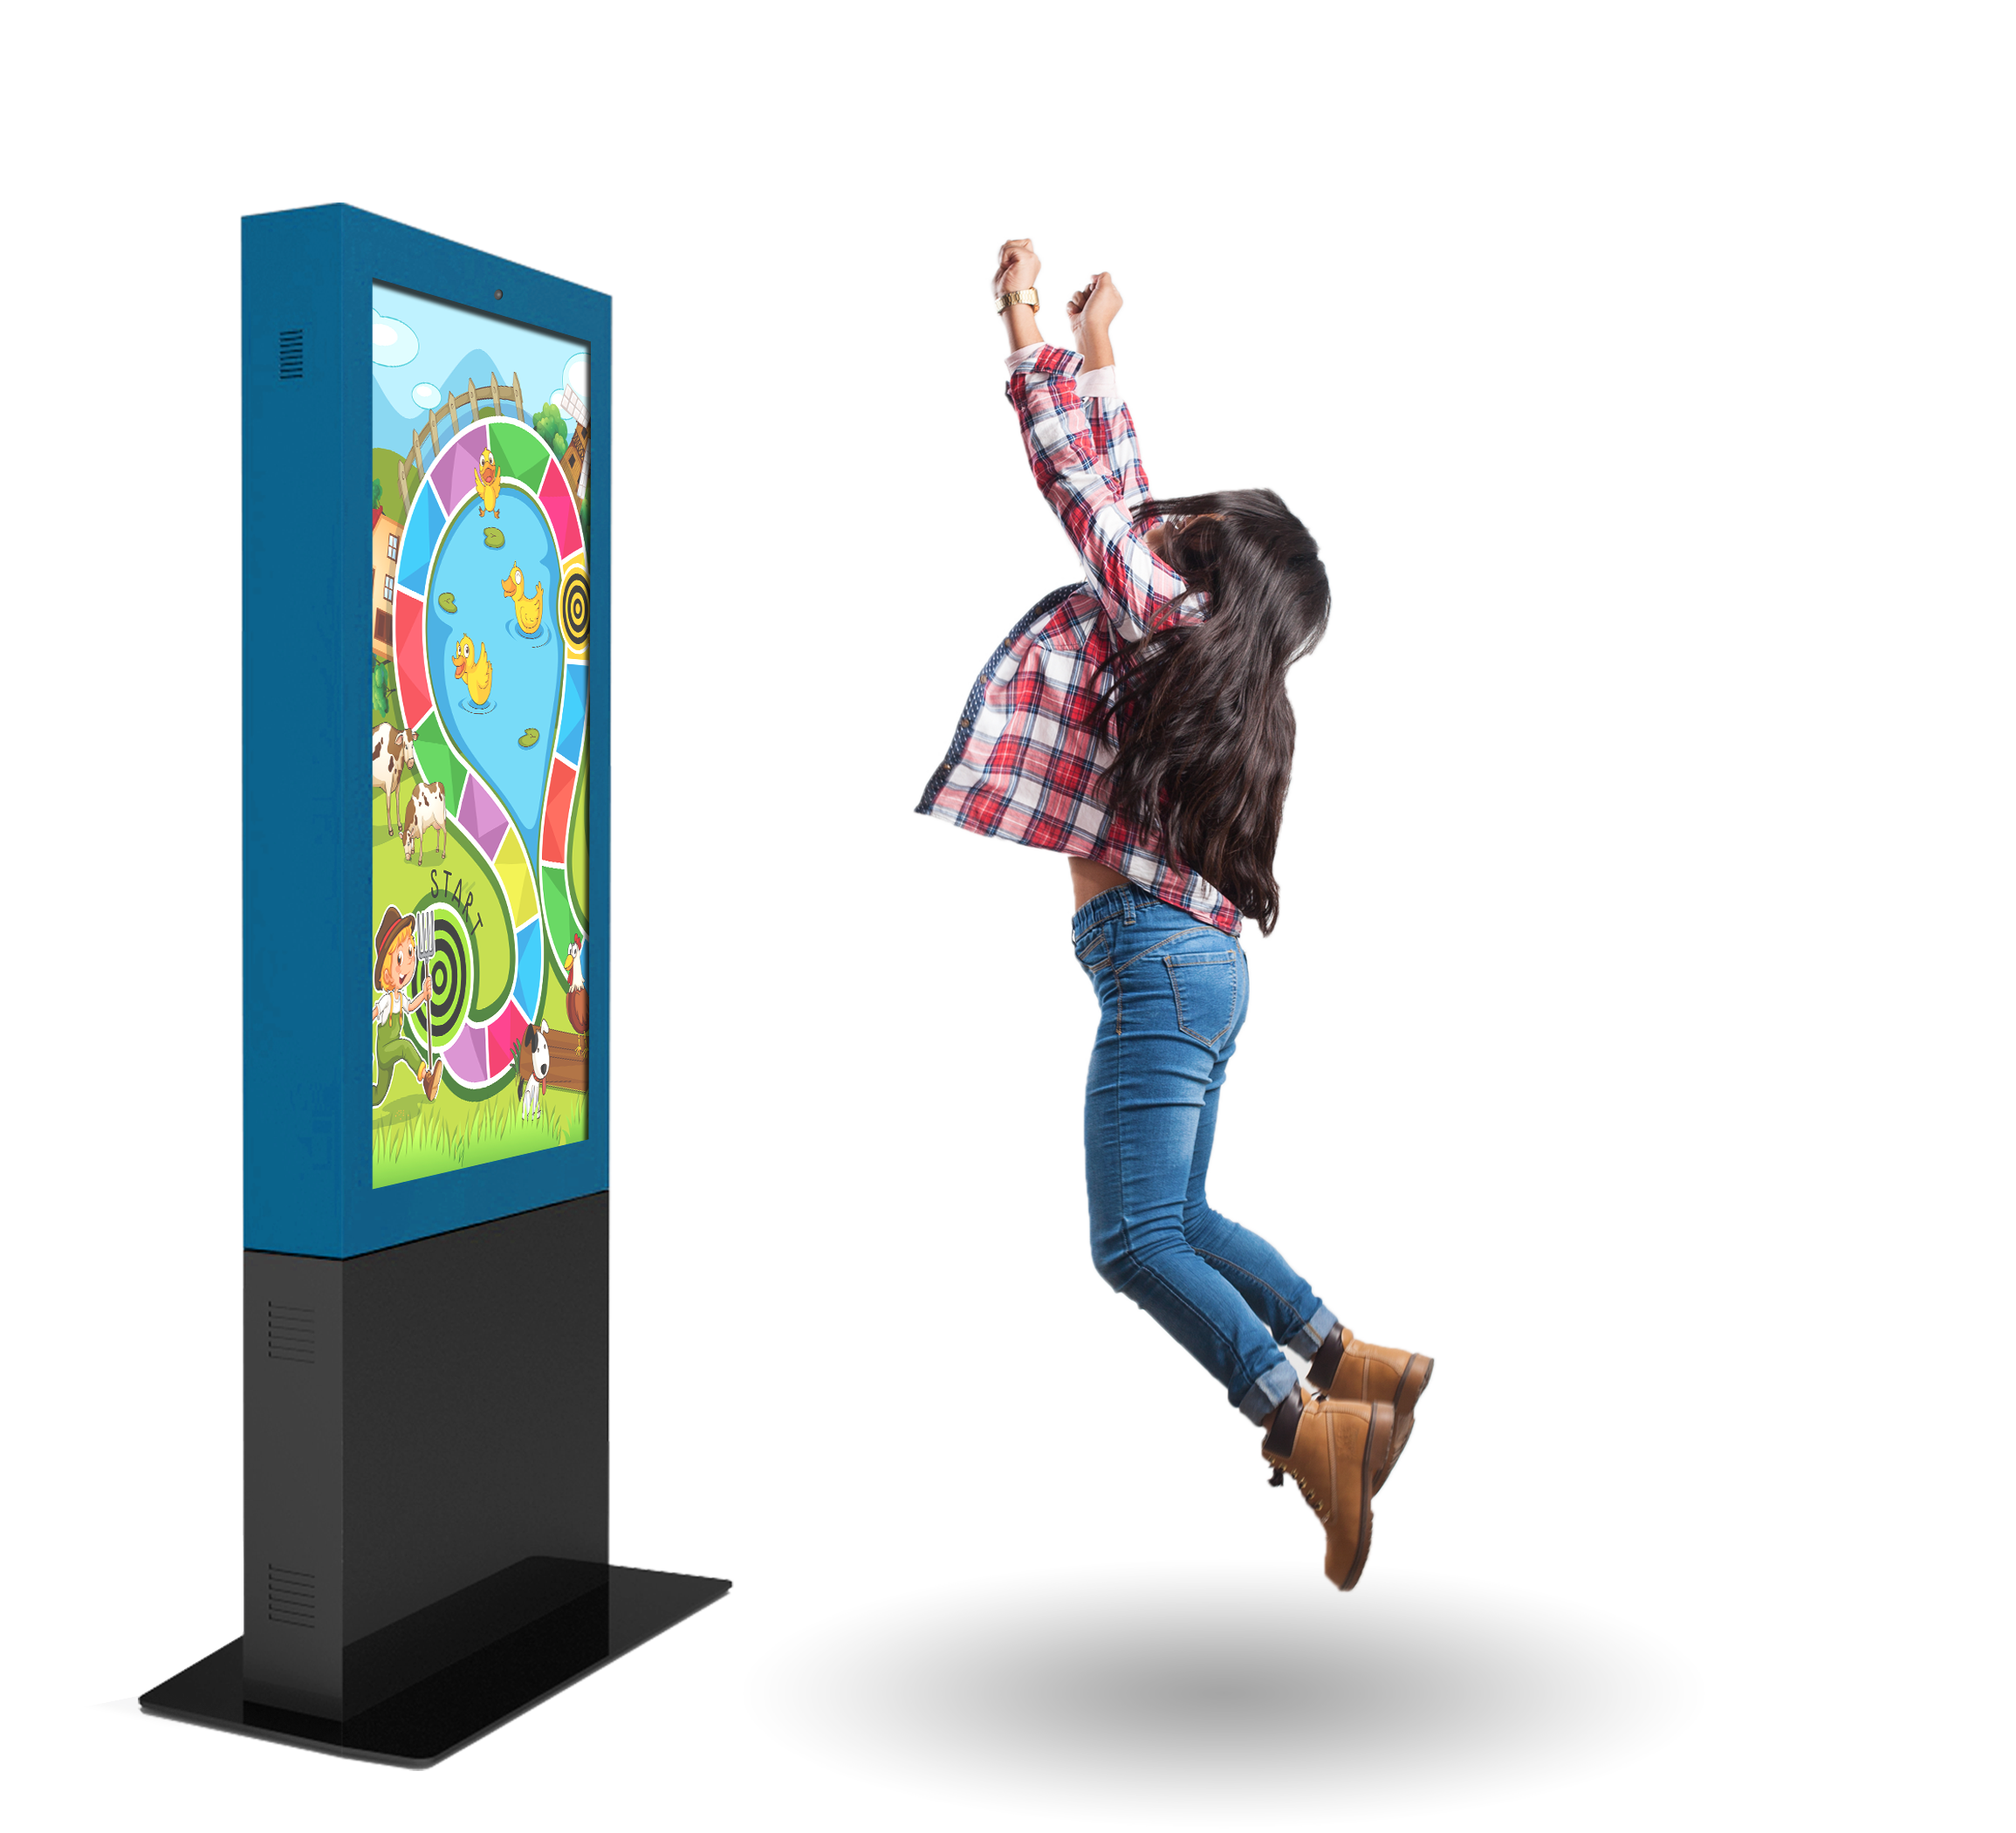 Kids Interactive solutions for children Augmented reality